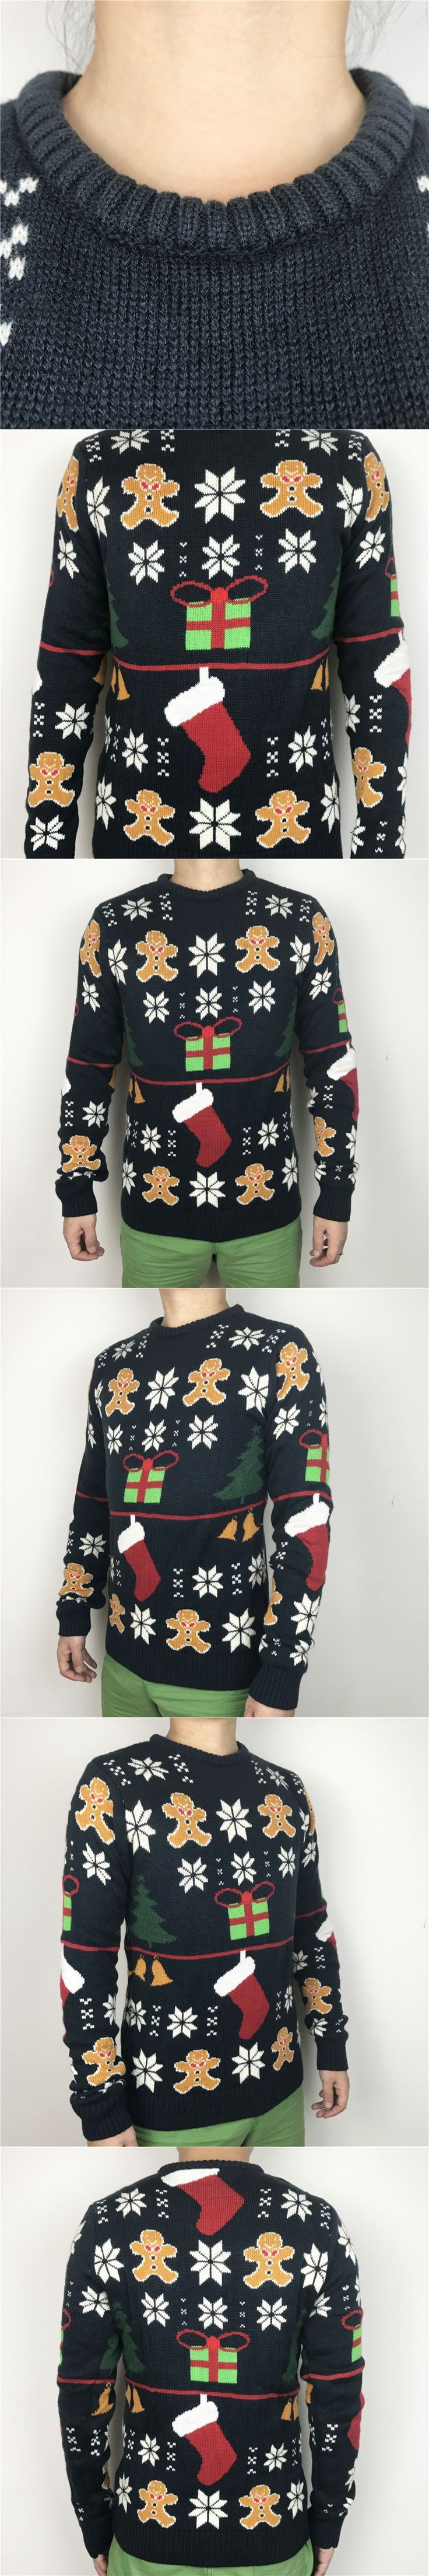 Funny Ugly Christmas Sweaters for Men and Women Cute Girls Knitted Xmas Gingerbread Man Pattern Jumpers Pullovers Plus Size S-XL